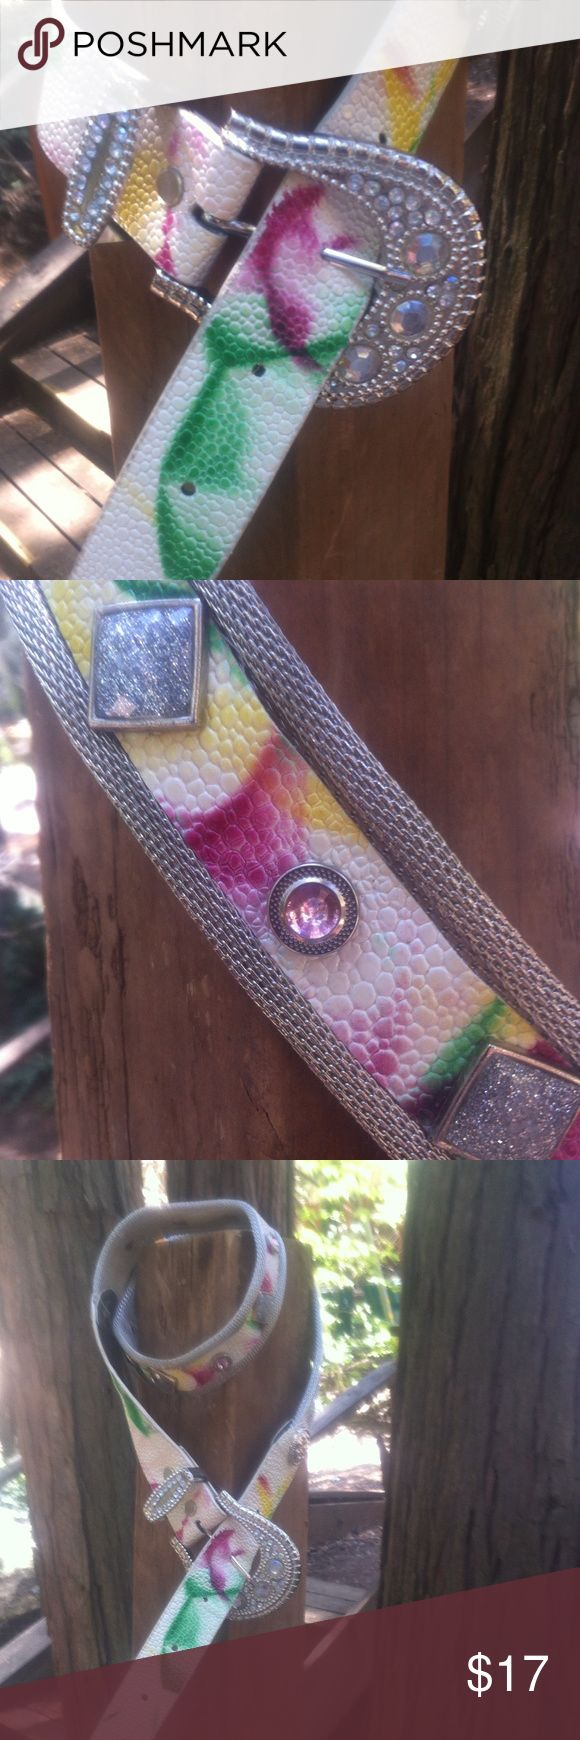 Hold...Creamy western bling belt Cream  textured leatherette, belt with a bit of bright color accent on silver mesh, with plenty of rhinestone bling, western up your outfit, a 'Kristens Find' overall length is 44, to the first buckle hole35,this belt is free with the purchase of $15 or more,just tag me... a 'Kristens Find' .Posh on, girlfriend;) Accessories Belts